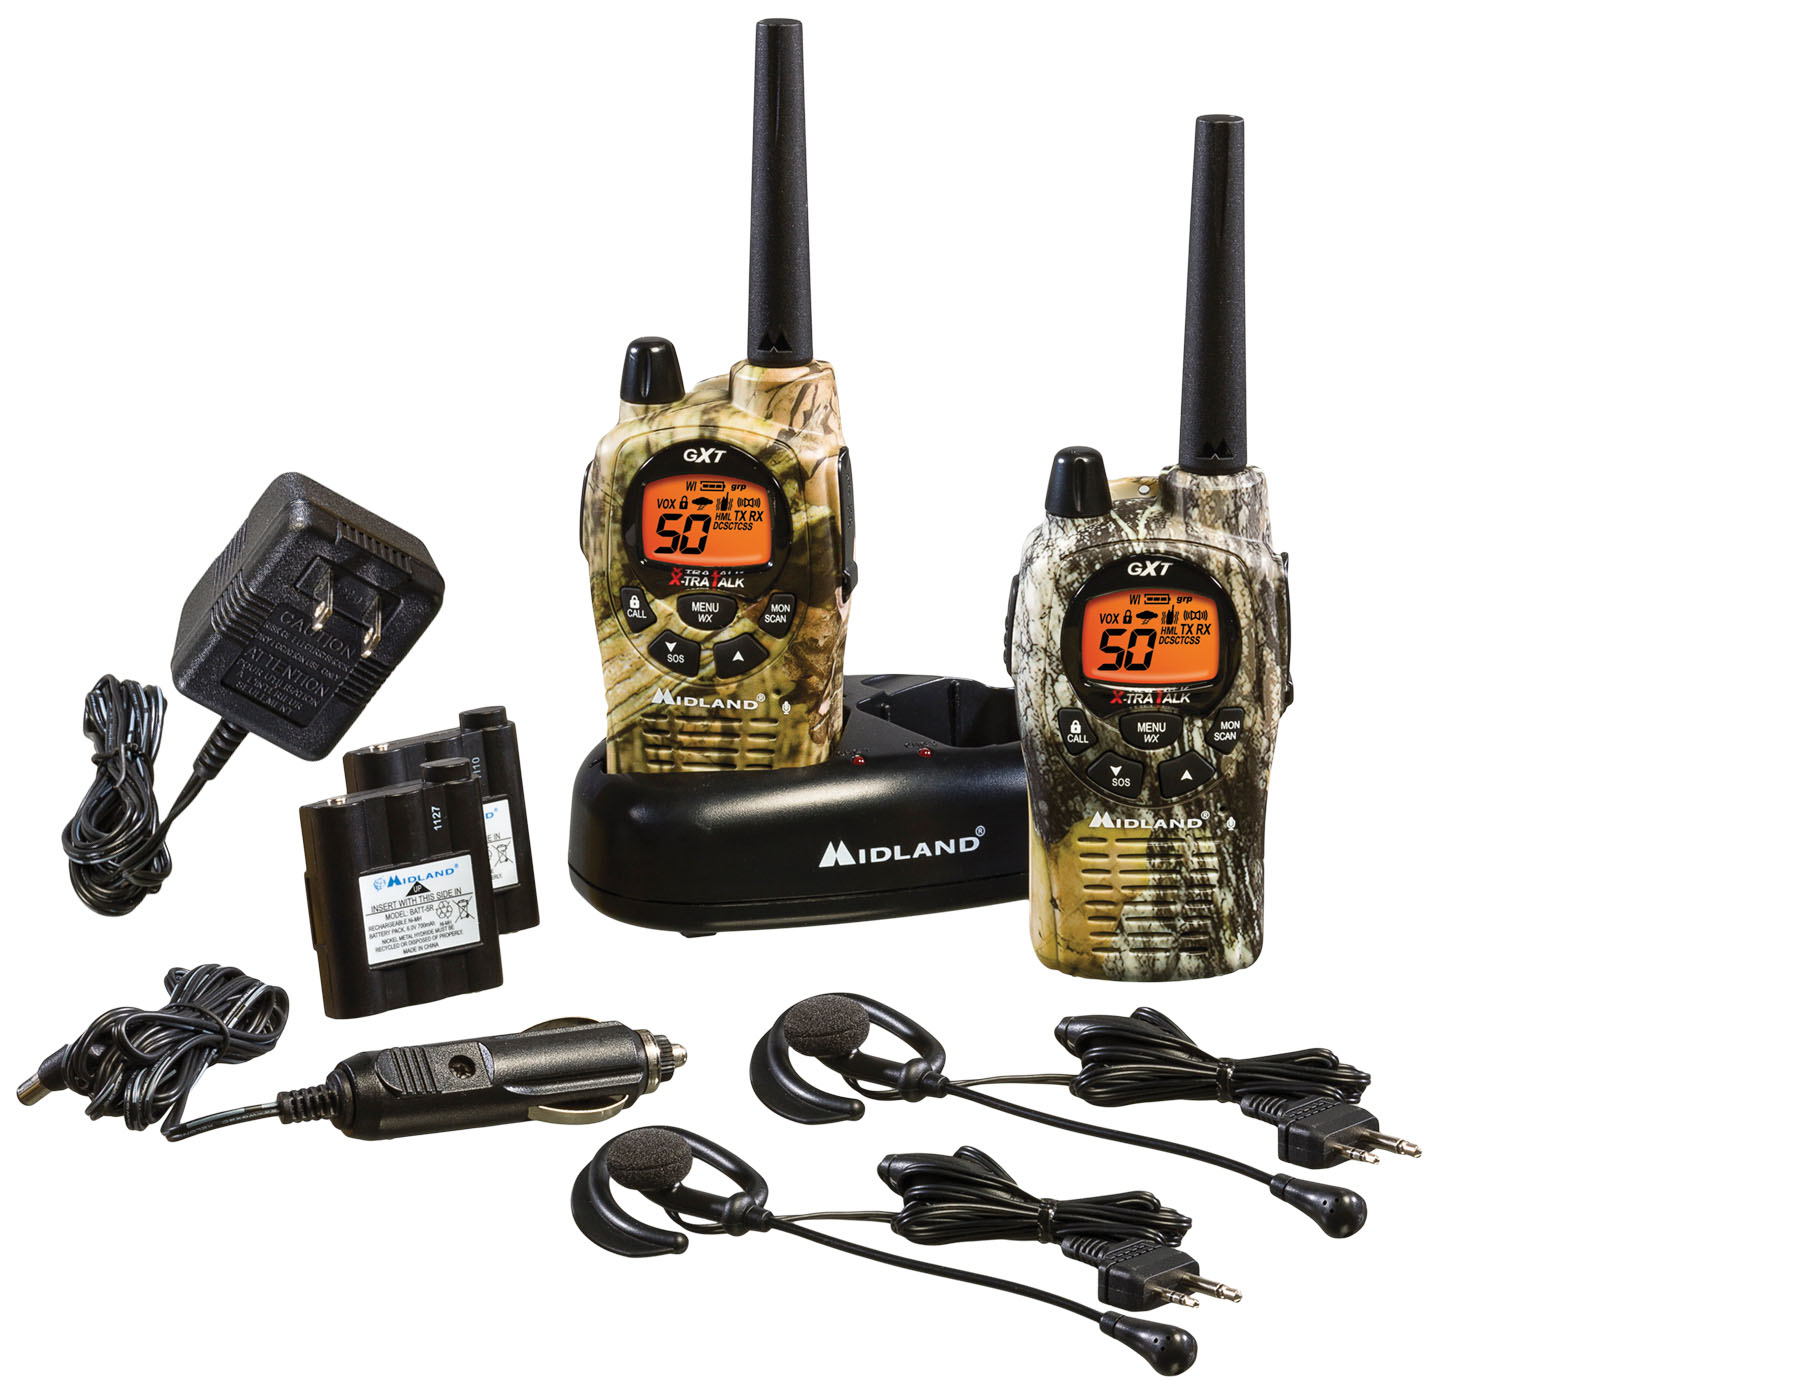 GXT1050VP4 - Midland 50 Channel GMRS Radios